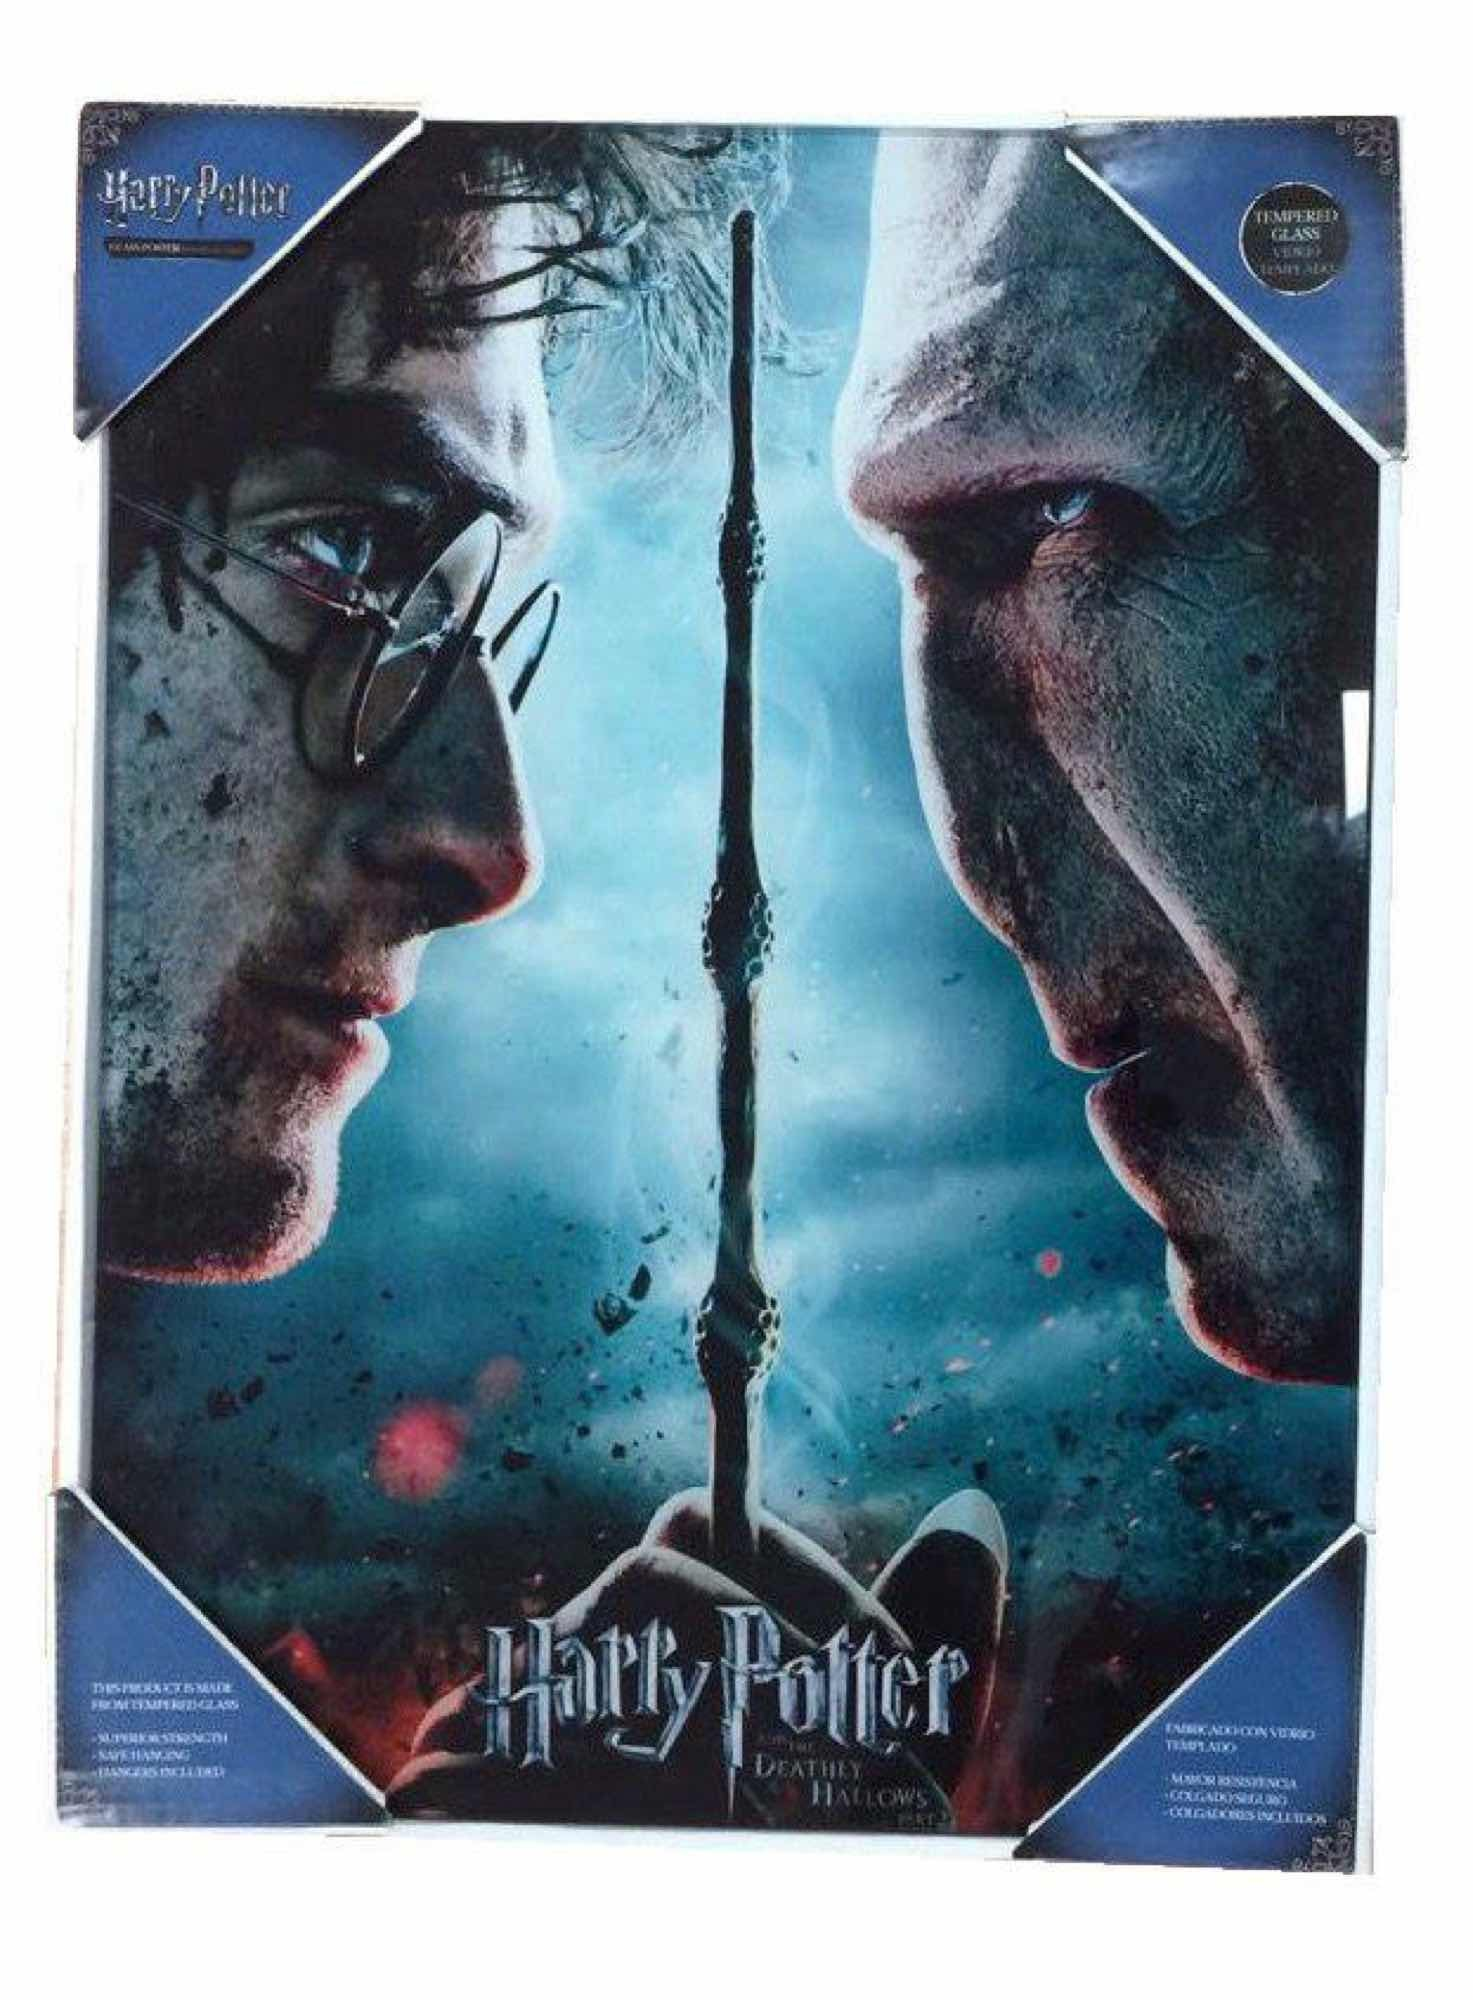 Wand Poster Xxl Box Poster Harry Potter Voldemort 30x40cm Originates From Harry